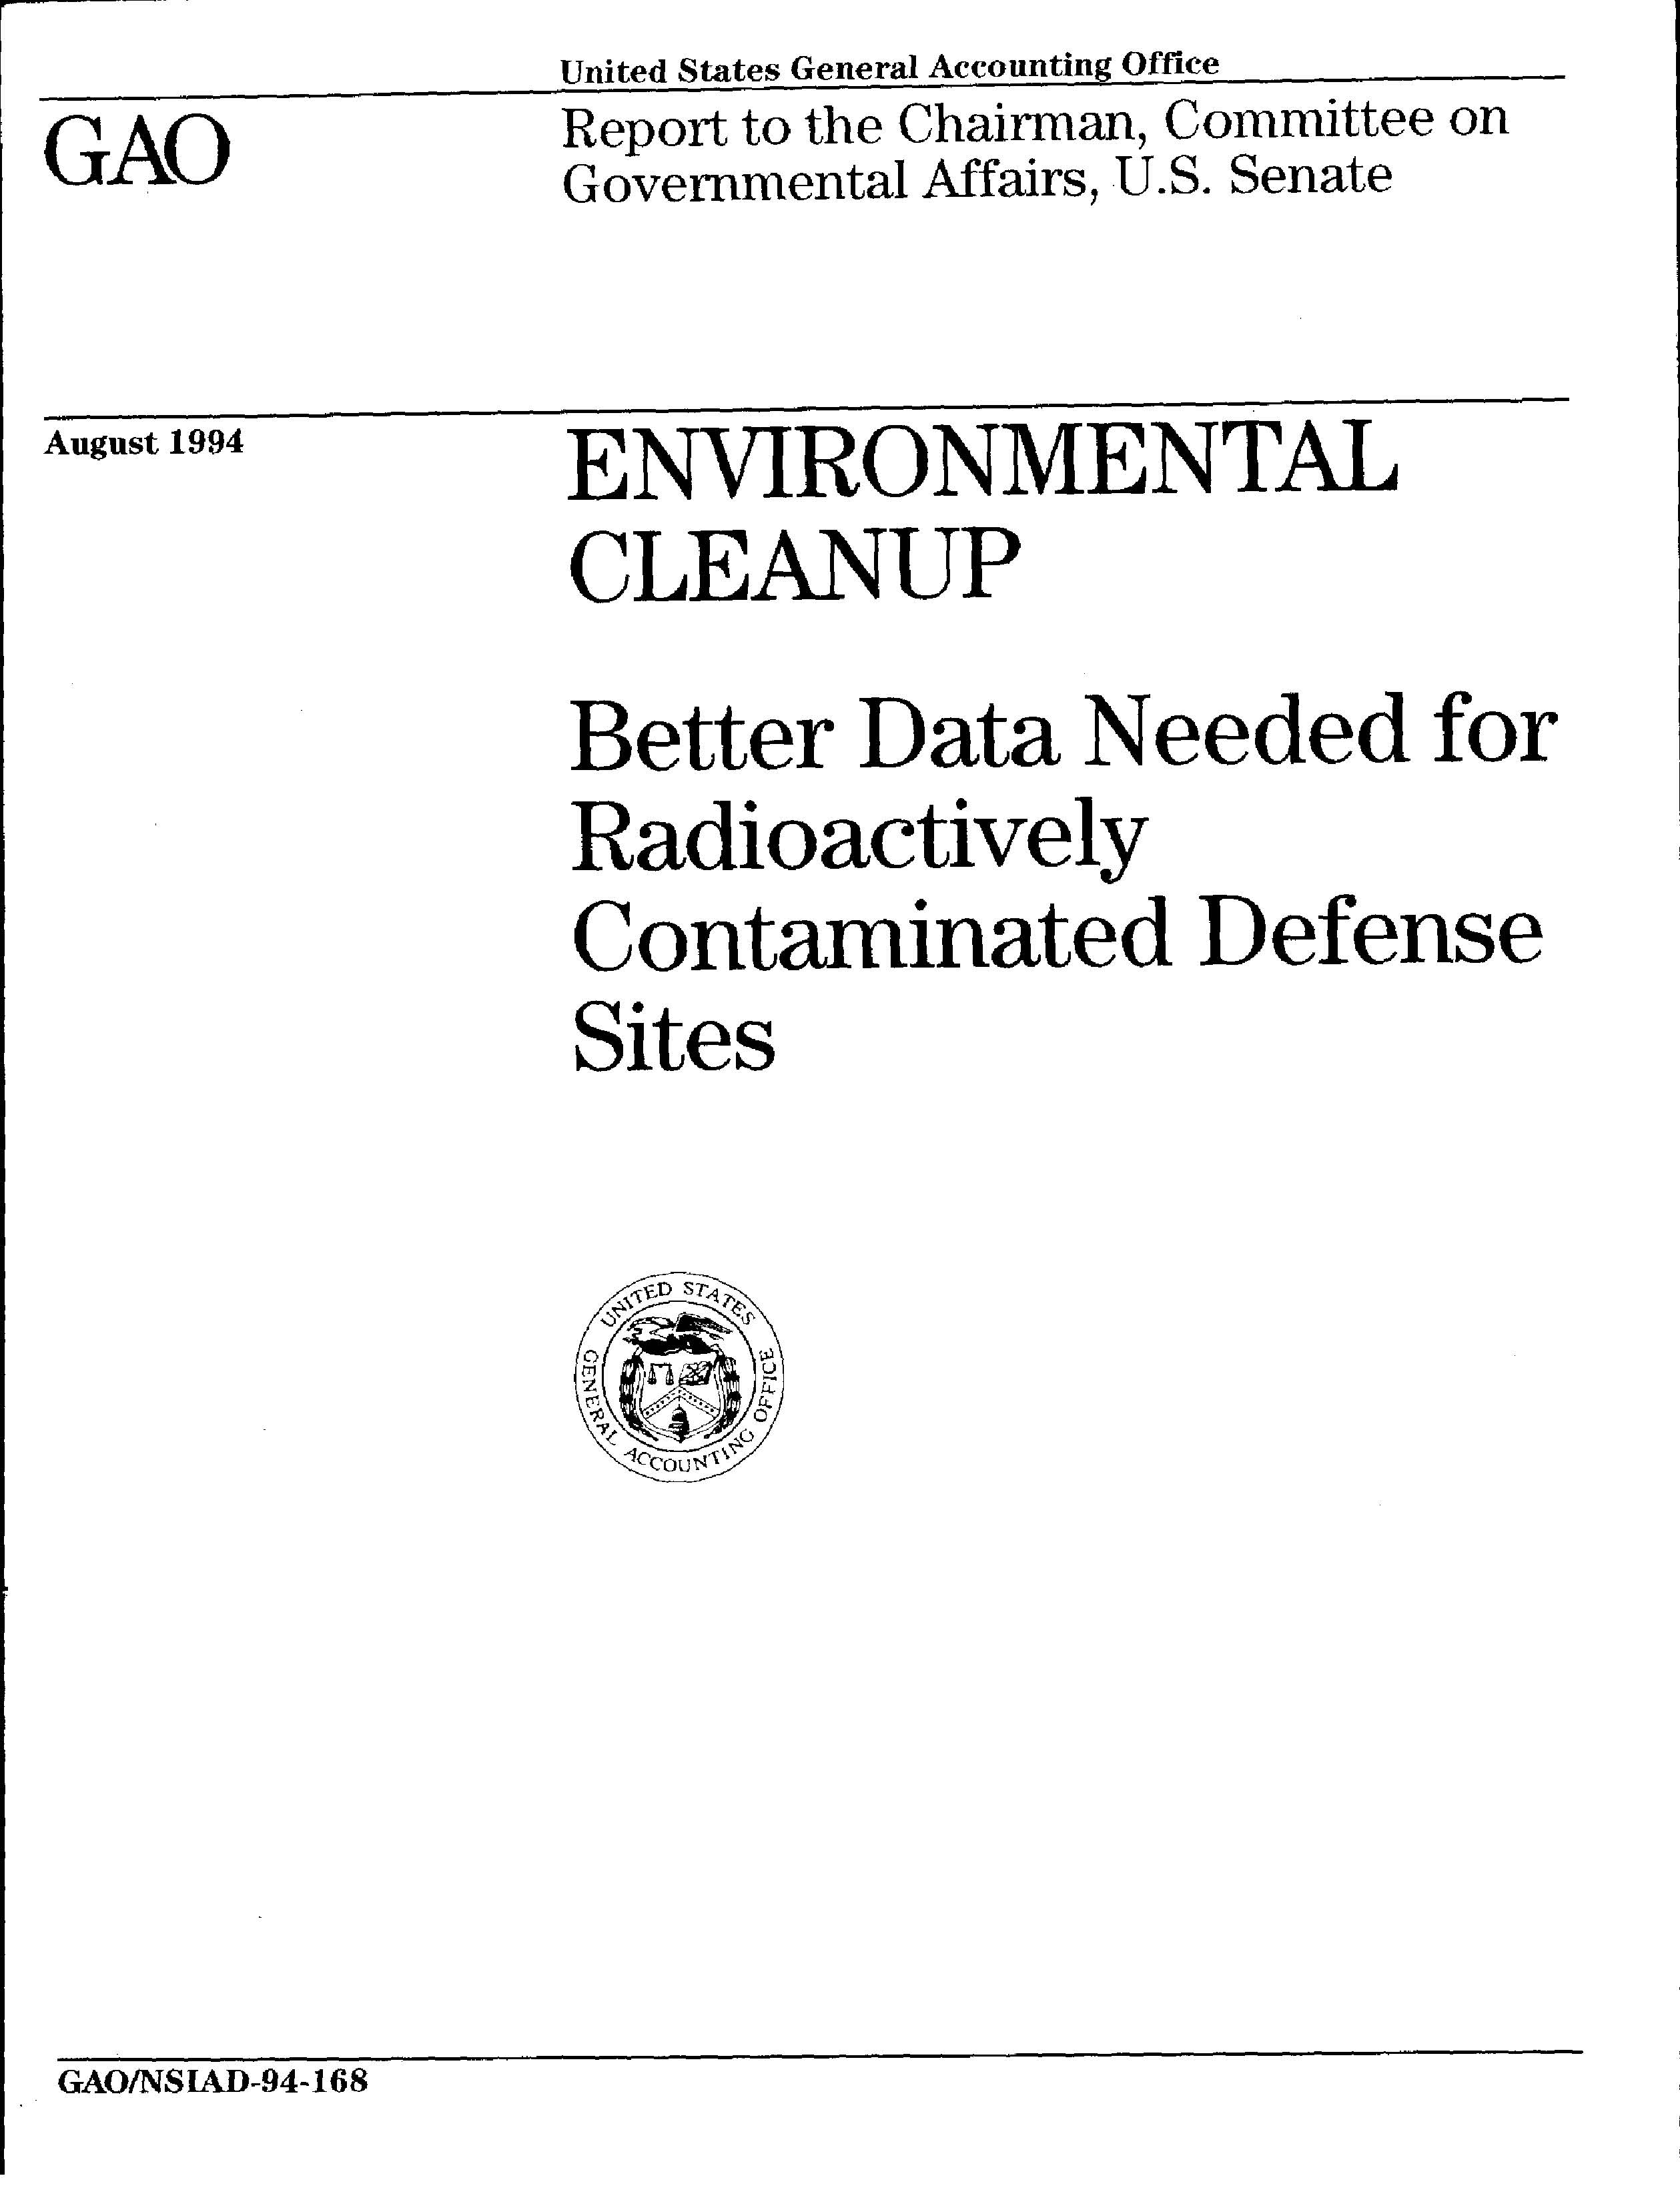 Better Data Needed for Radioactively Contaminated Defense Sites